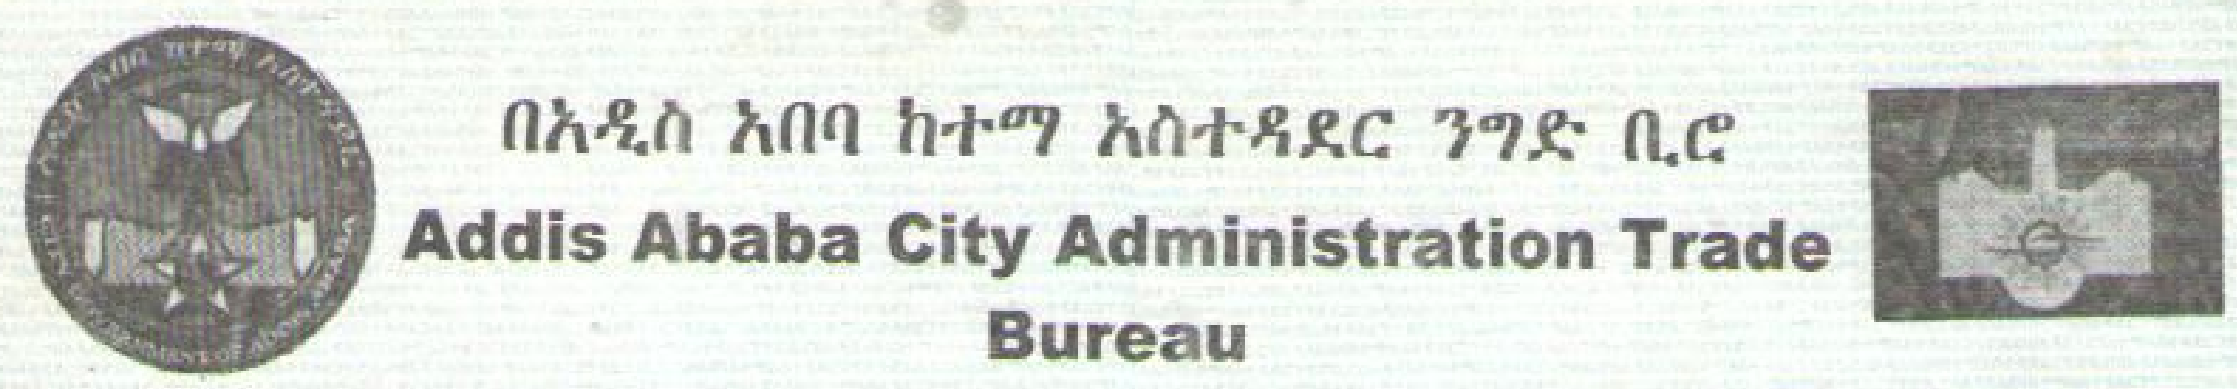 Ethiopia licensure for trading1